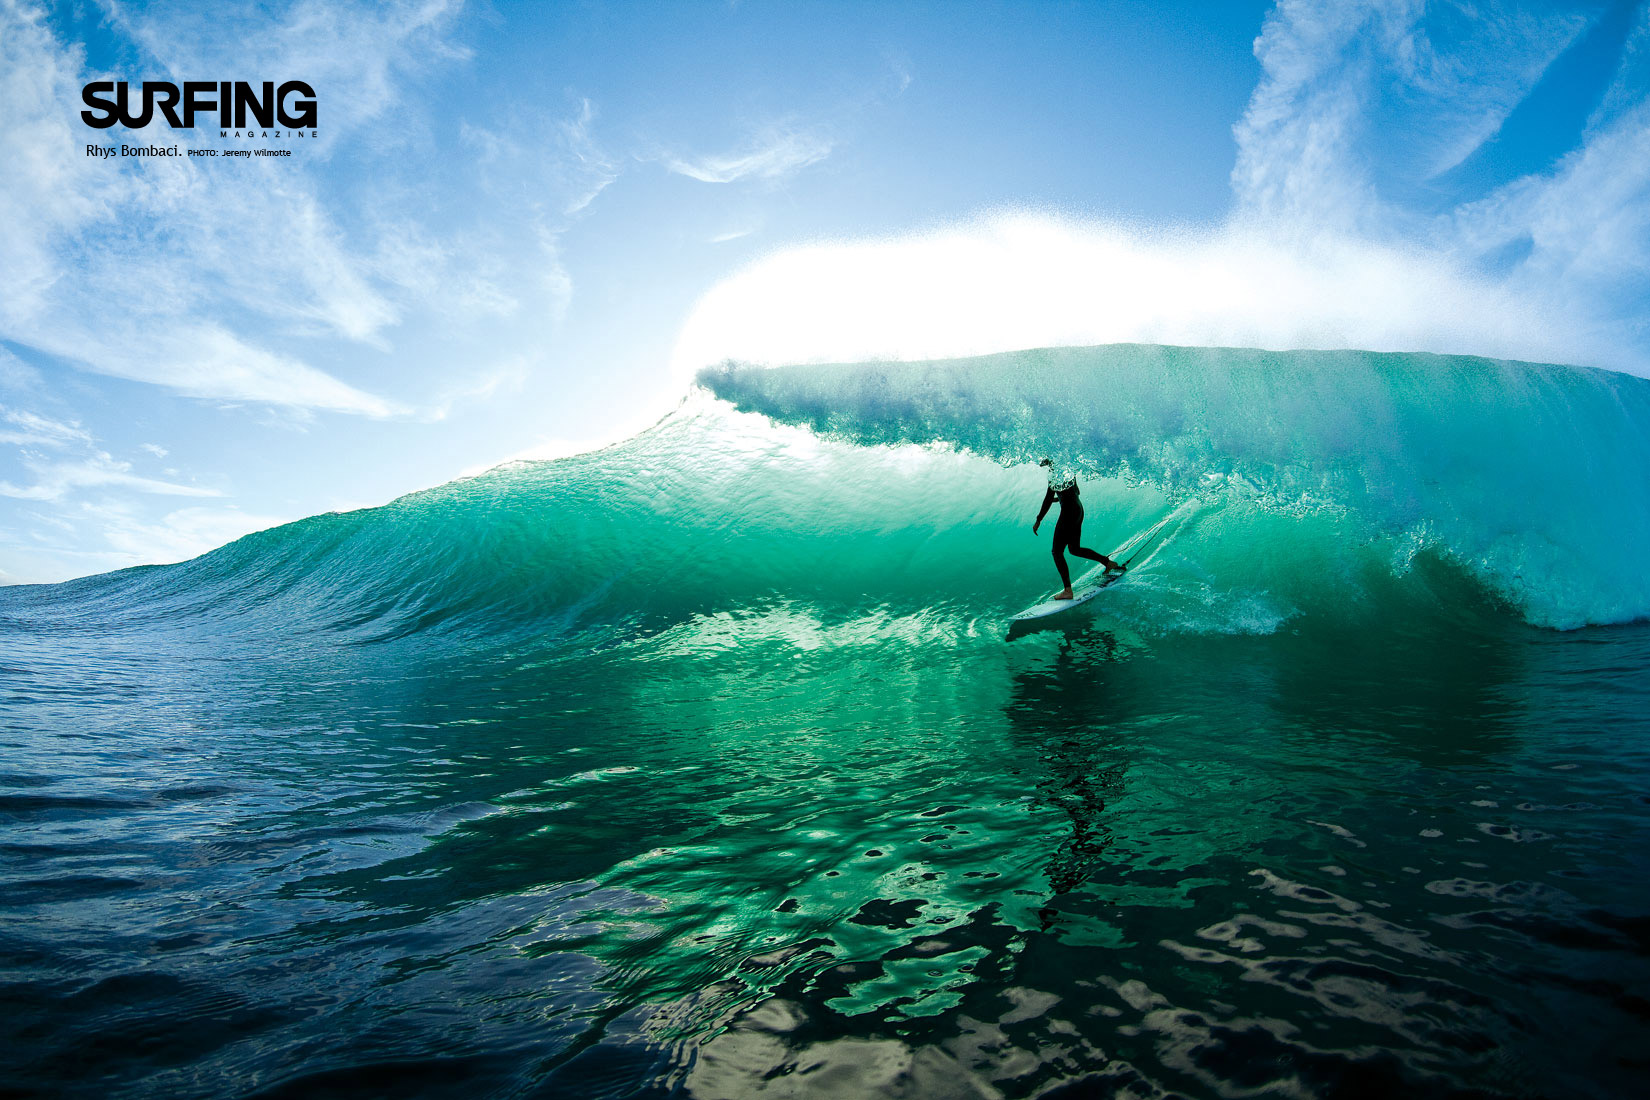 Waves Surfing Wallpaper Background For Co 5954 Wallpaper Cool 1650x1100